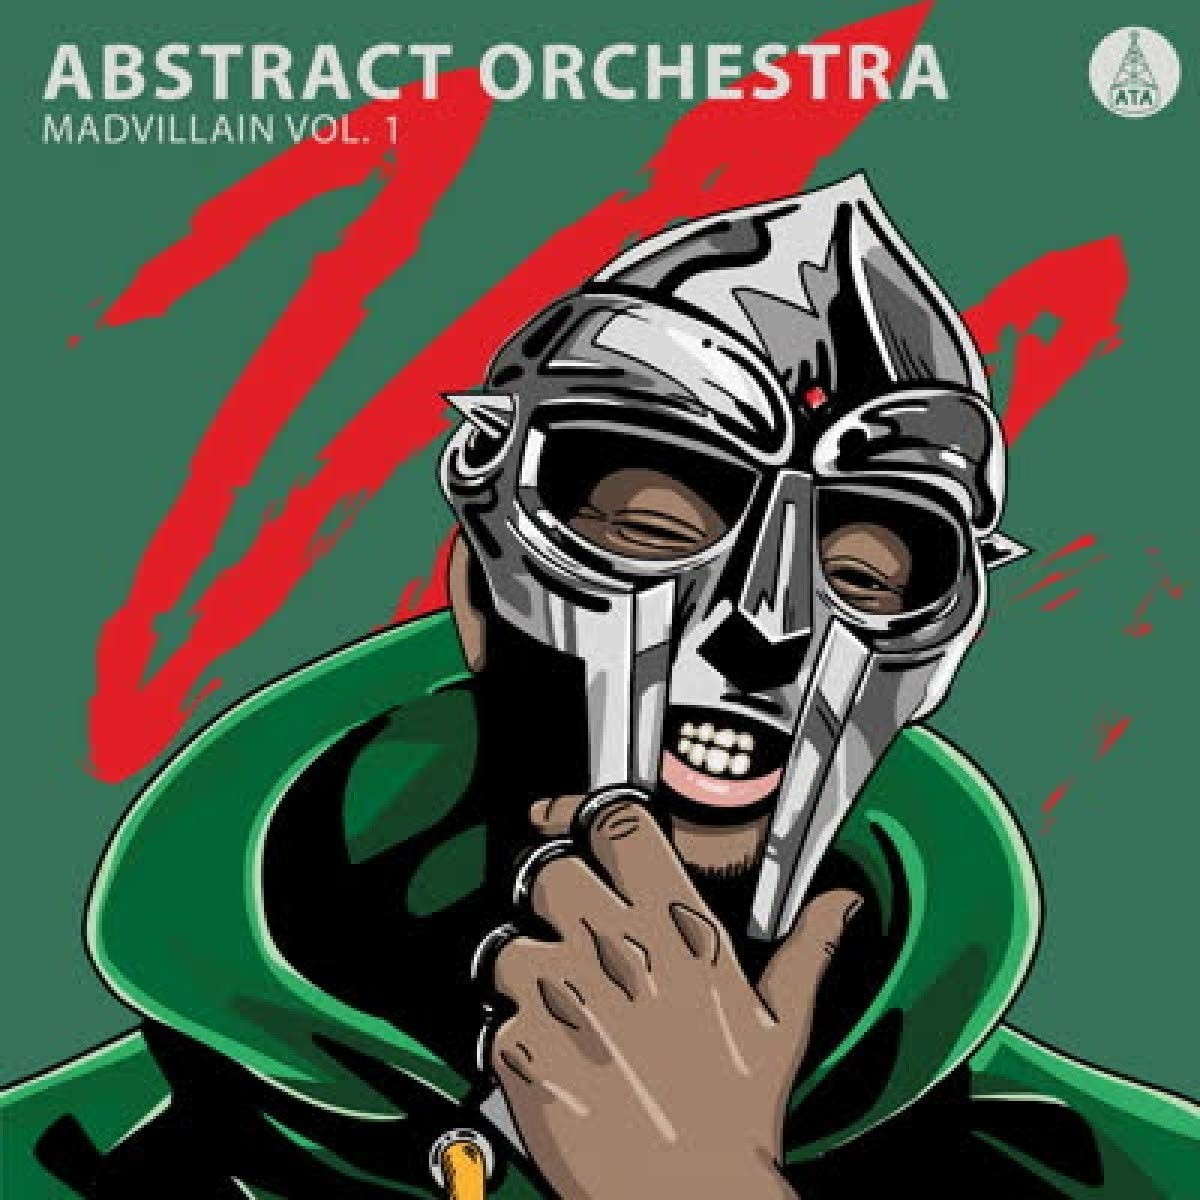 Abstract Orchestra - Madvillain Vol 1.